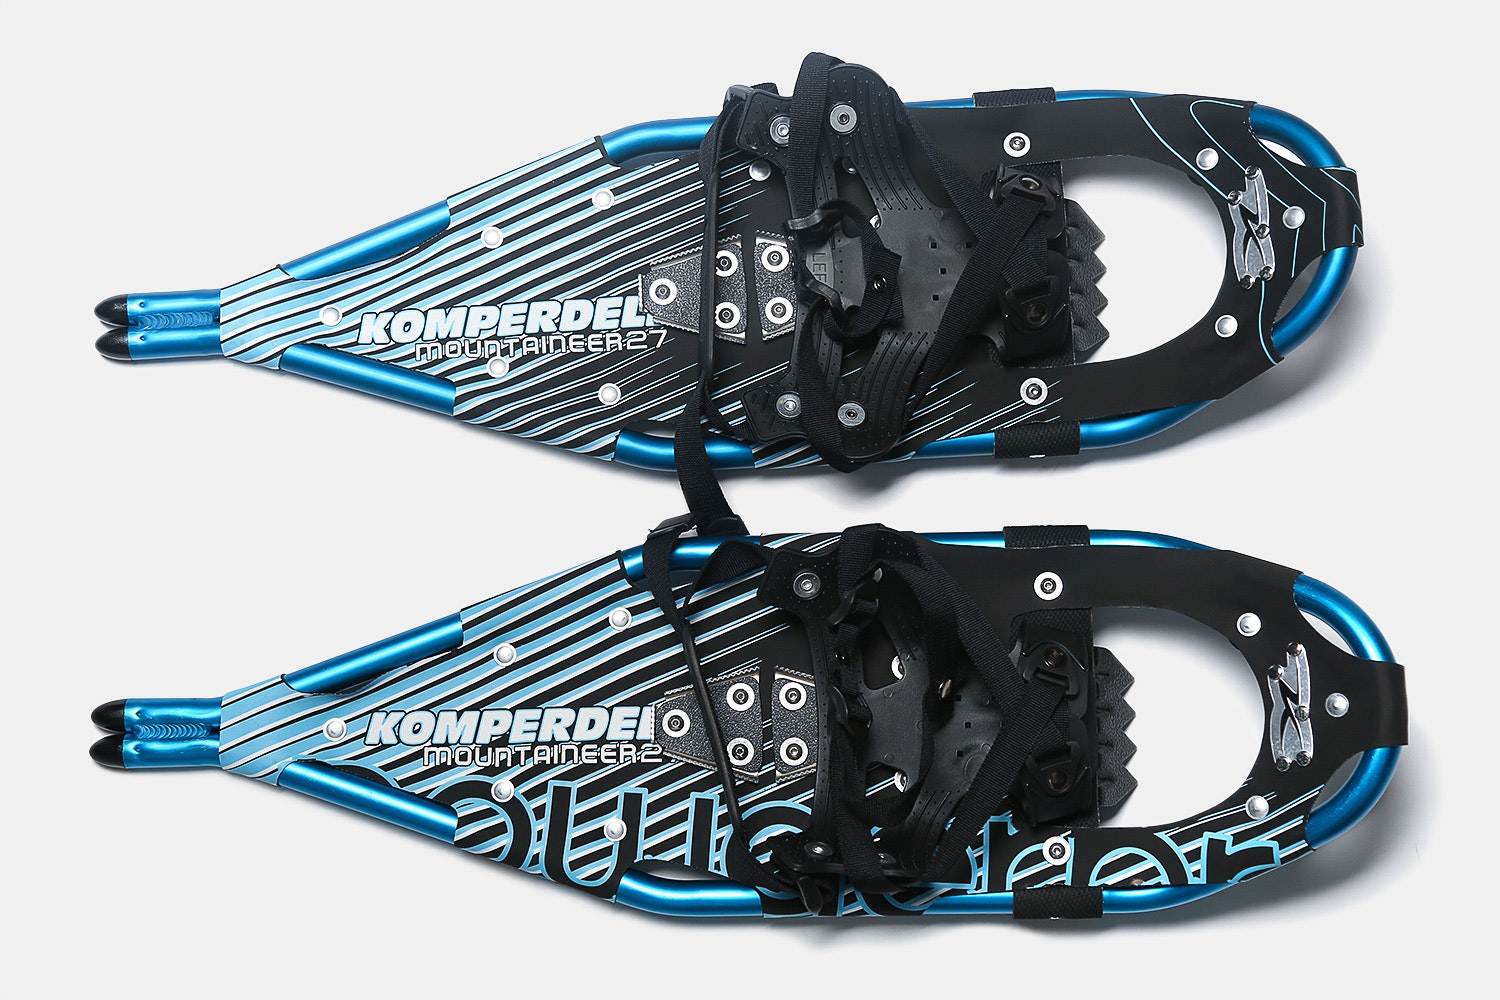 Komperdell Alpinist & Mountaineer Snowshoes